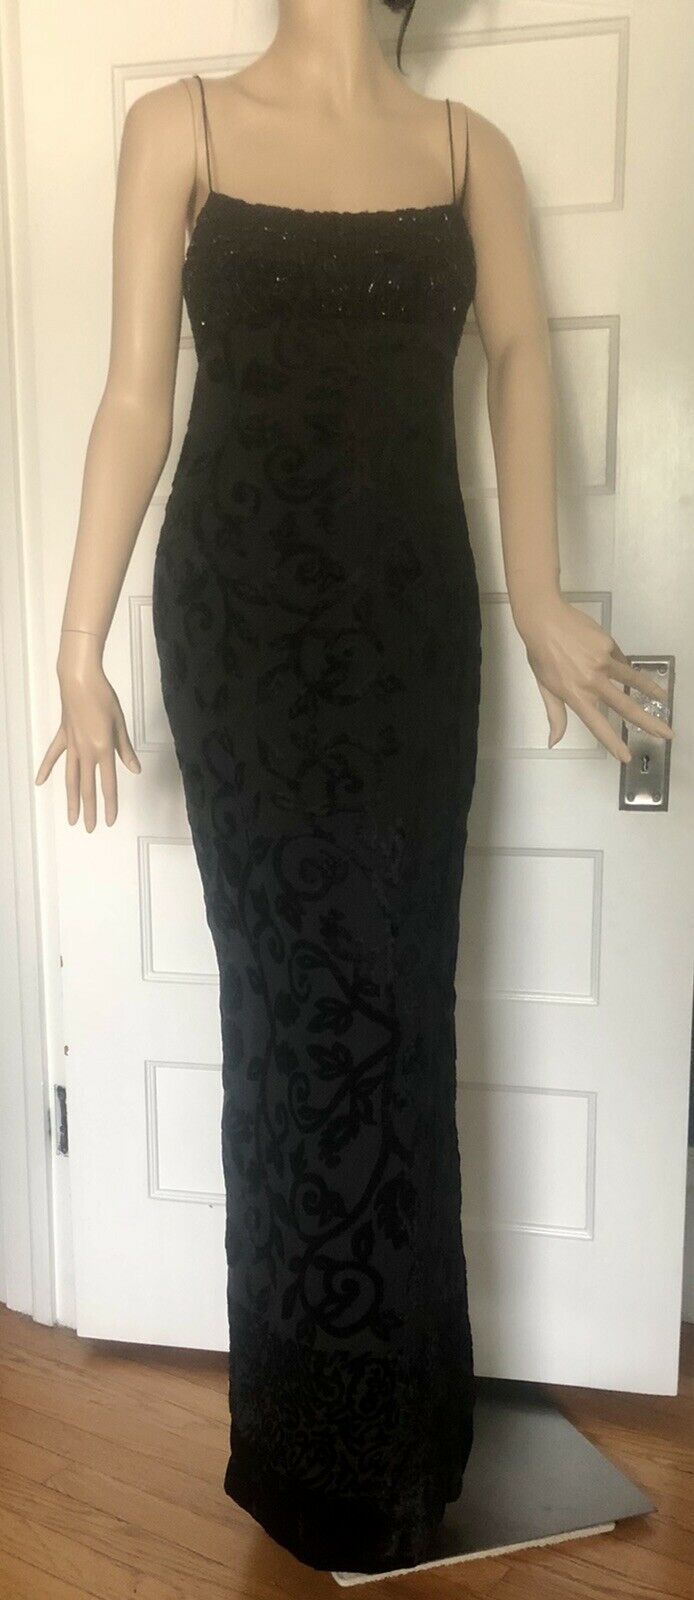 Kay Unger Black Beaded/Sequined Top with Velvet Burn Out Gown Size 4 EUC